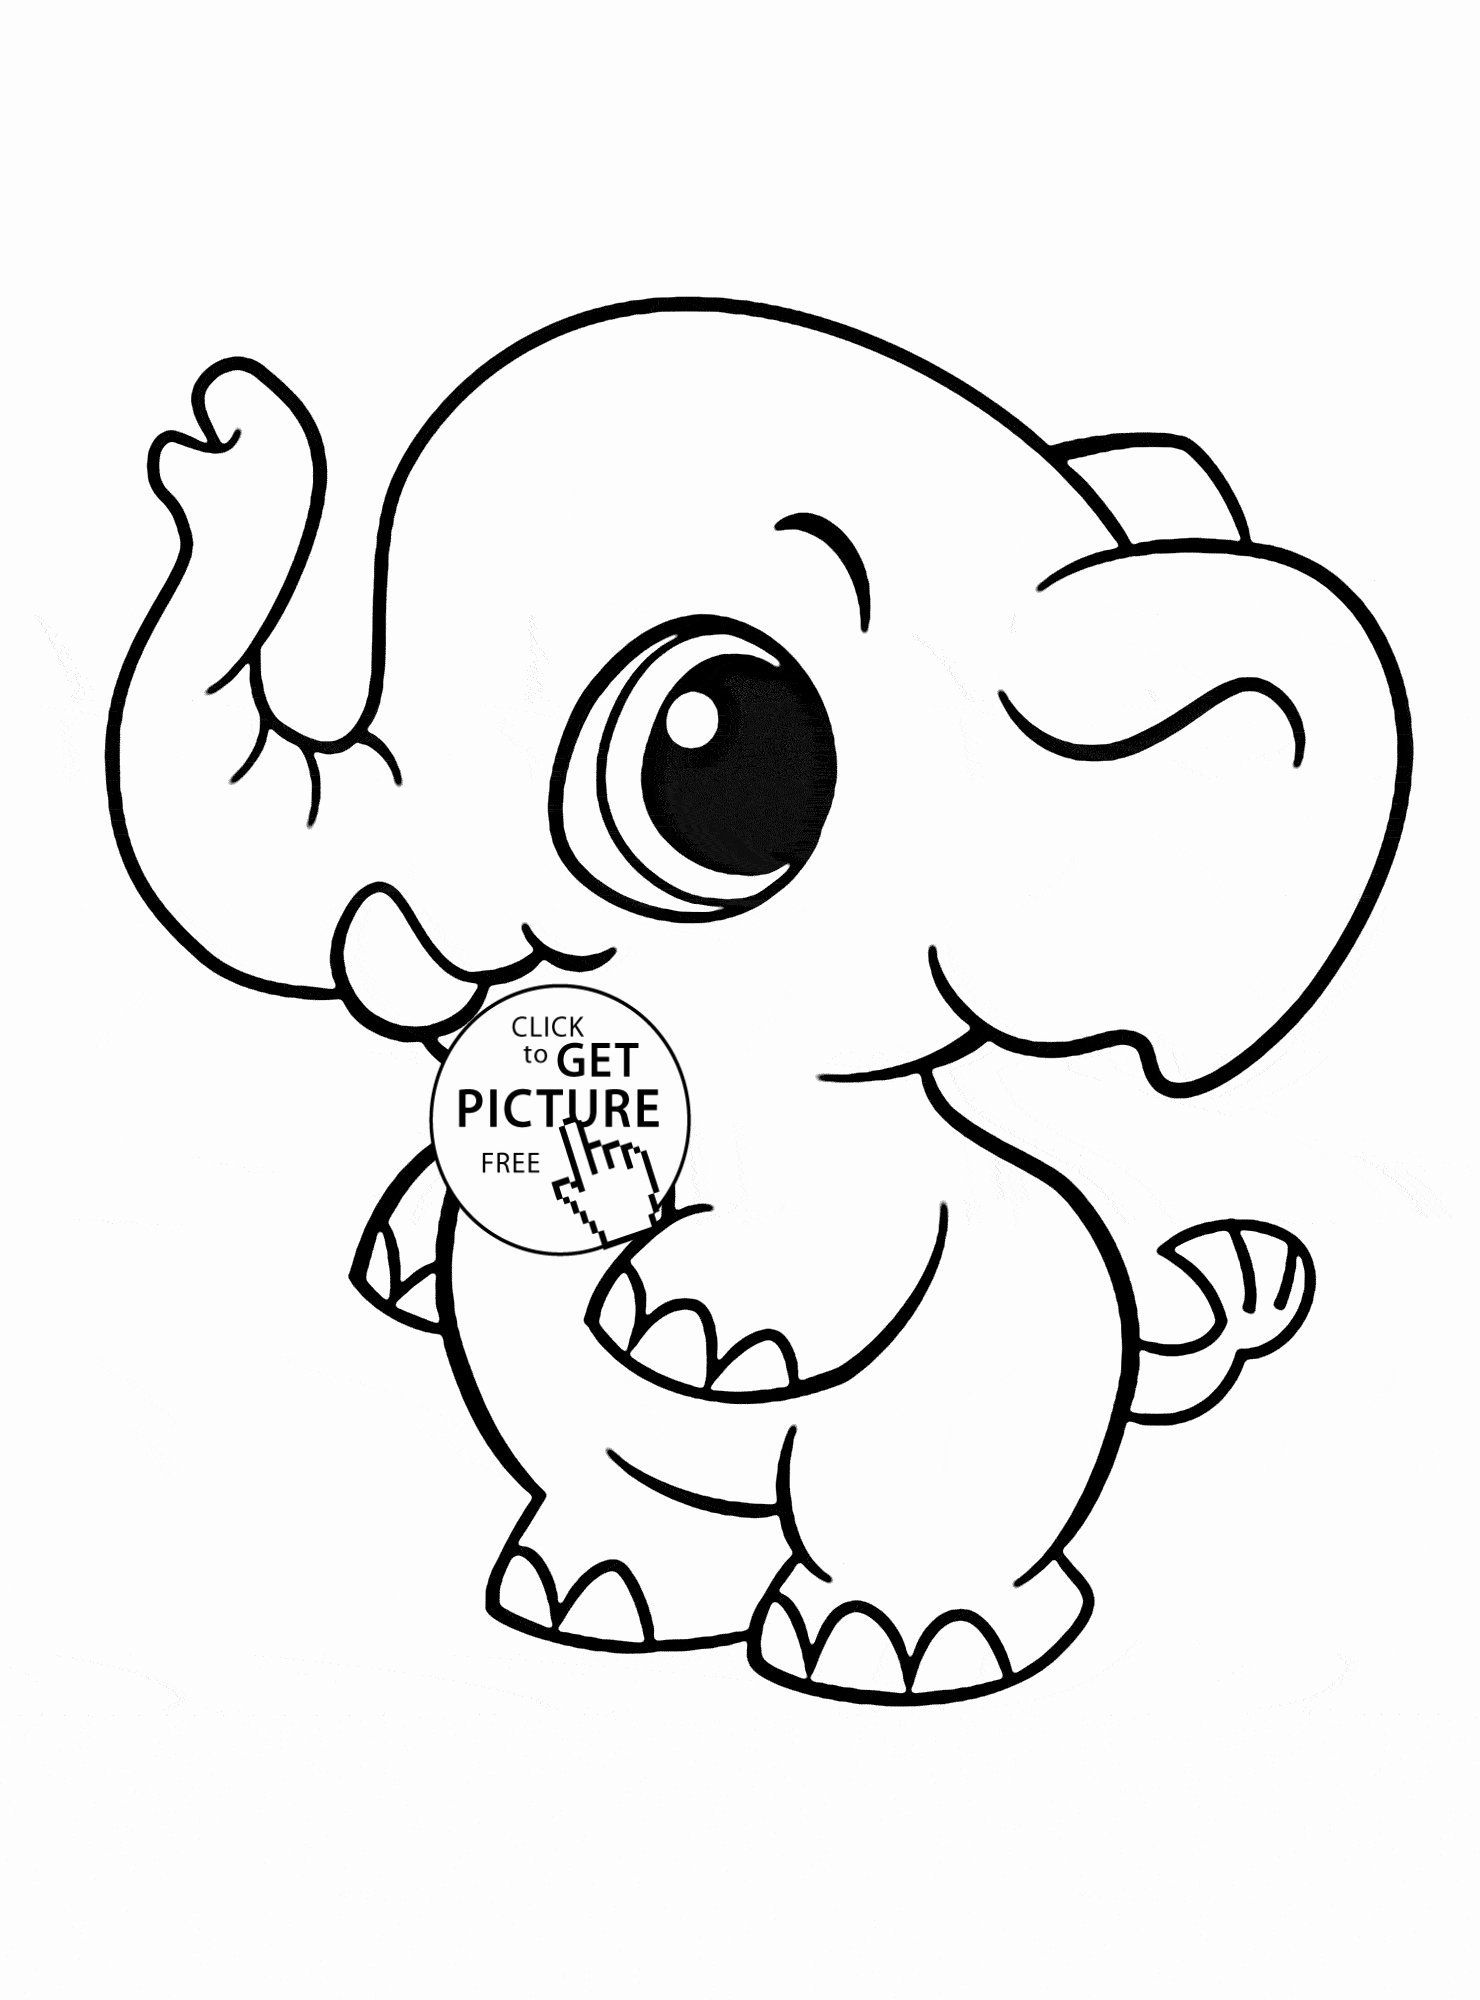 Sports Coloring Pages Pdf Coloring Pages Gallery In 2020 Zoo Animal Coloring Pages Unicorn Coloring Pages Elephant Coloring Page